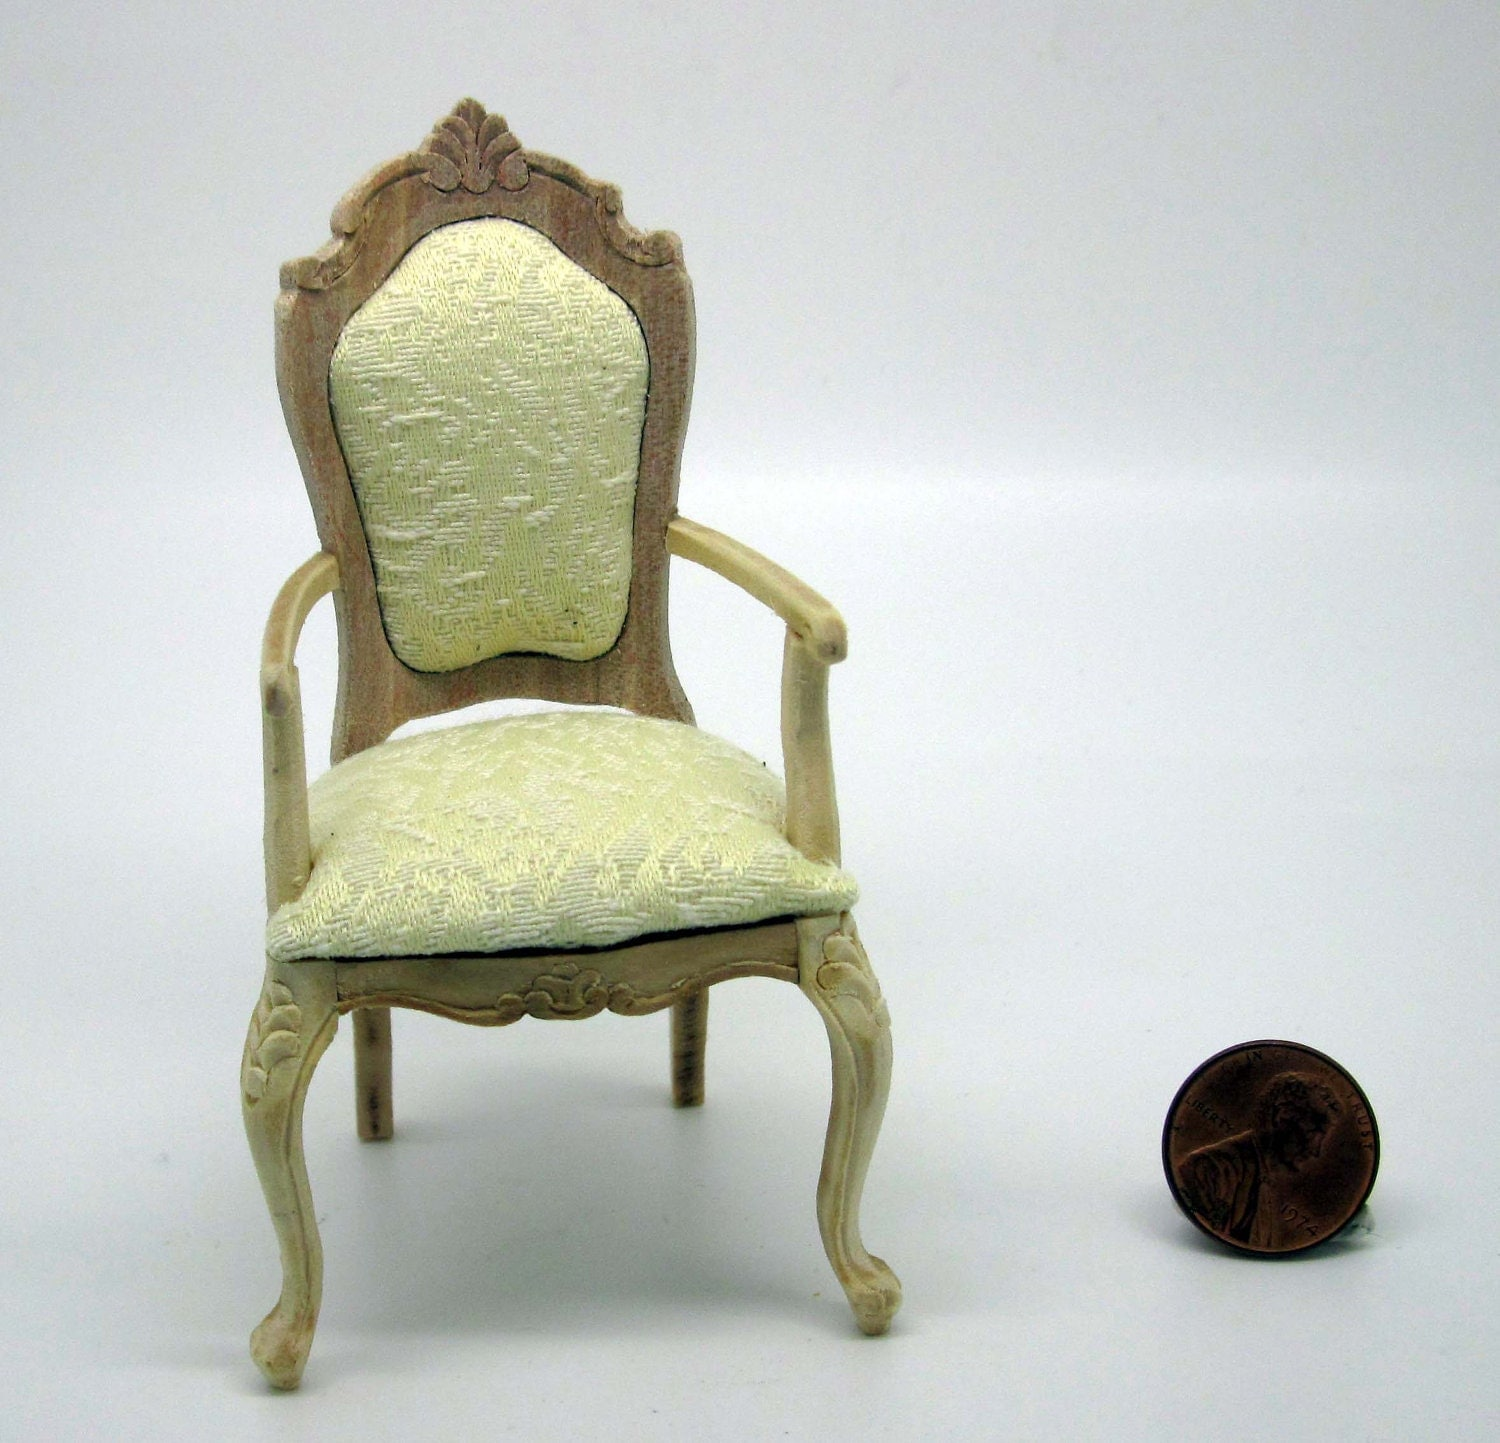 Miniature Dollhouse Furniture Undecorated Chair With Armrests